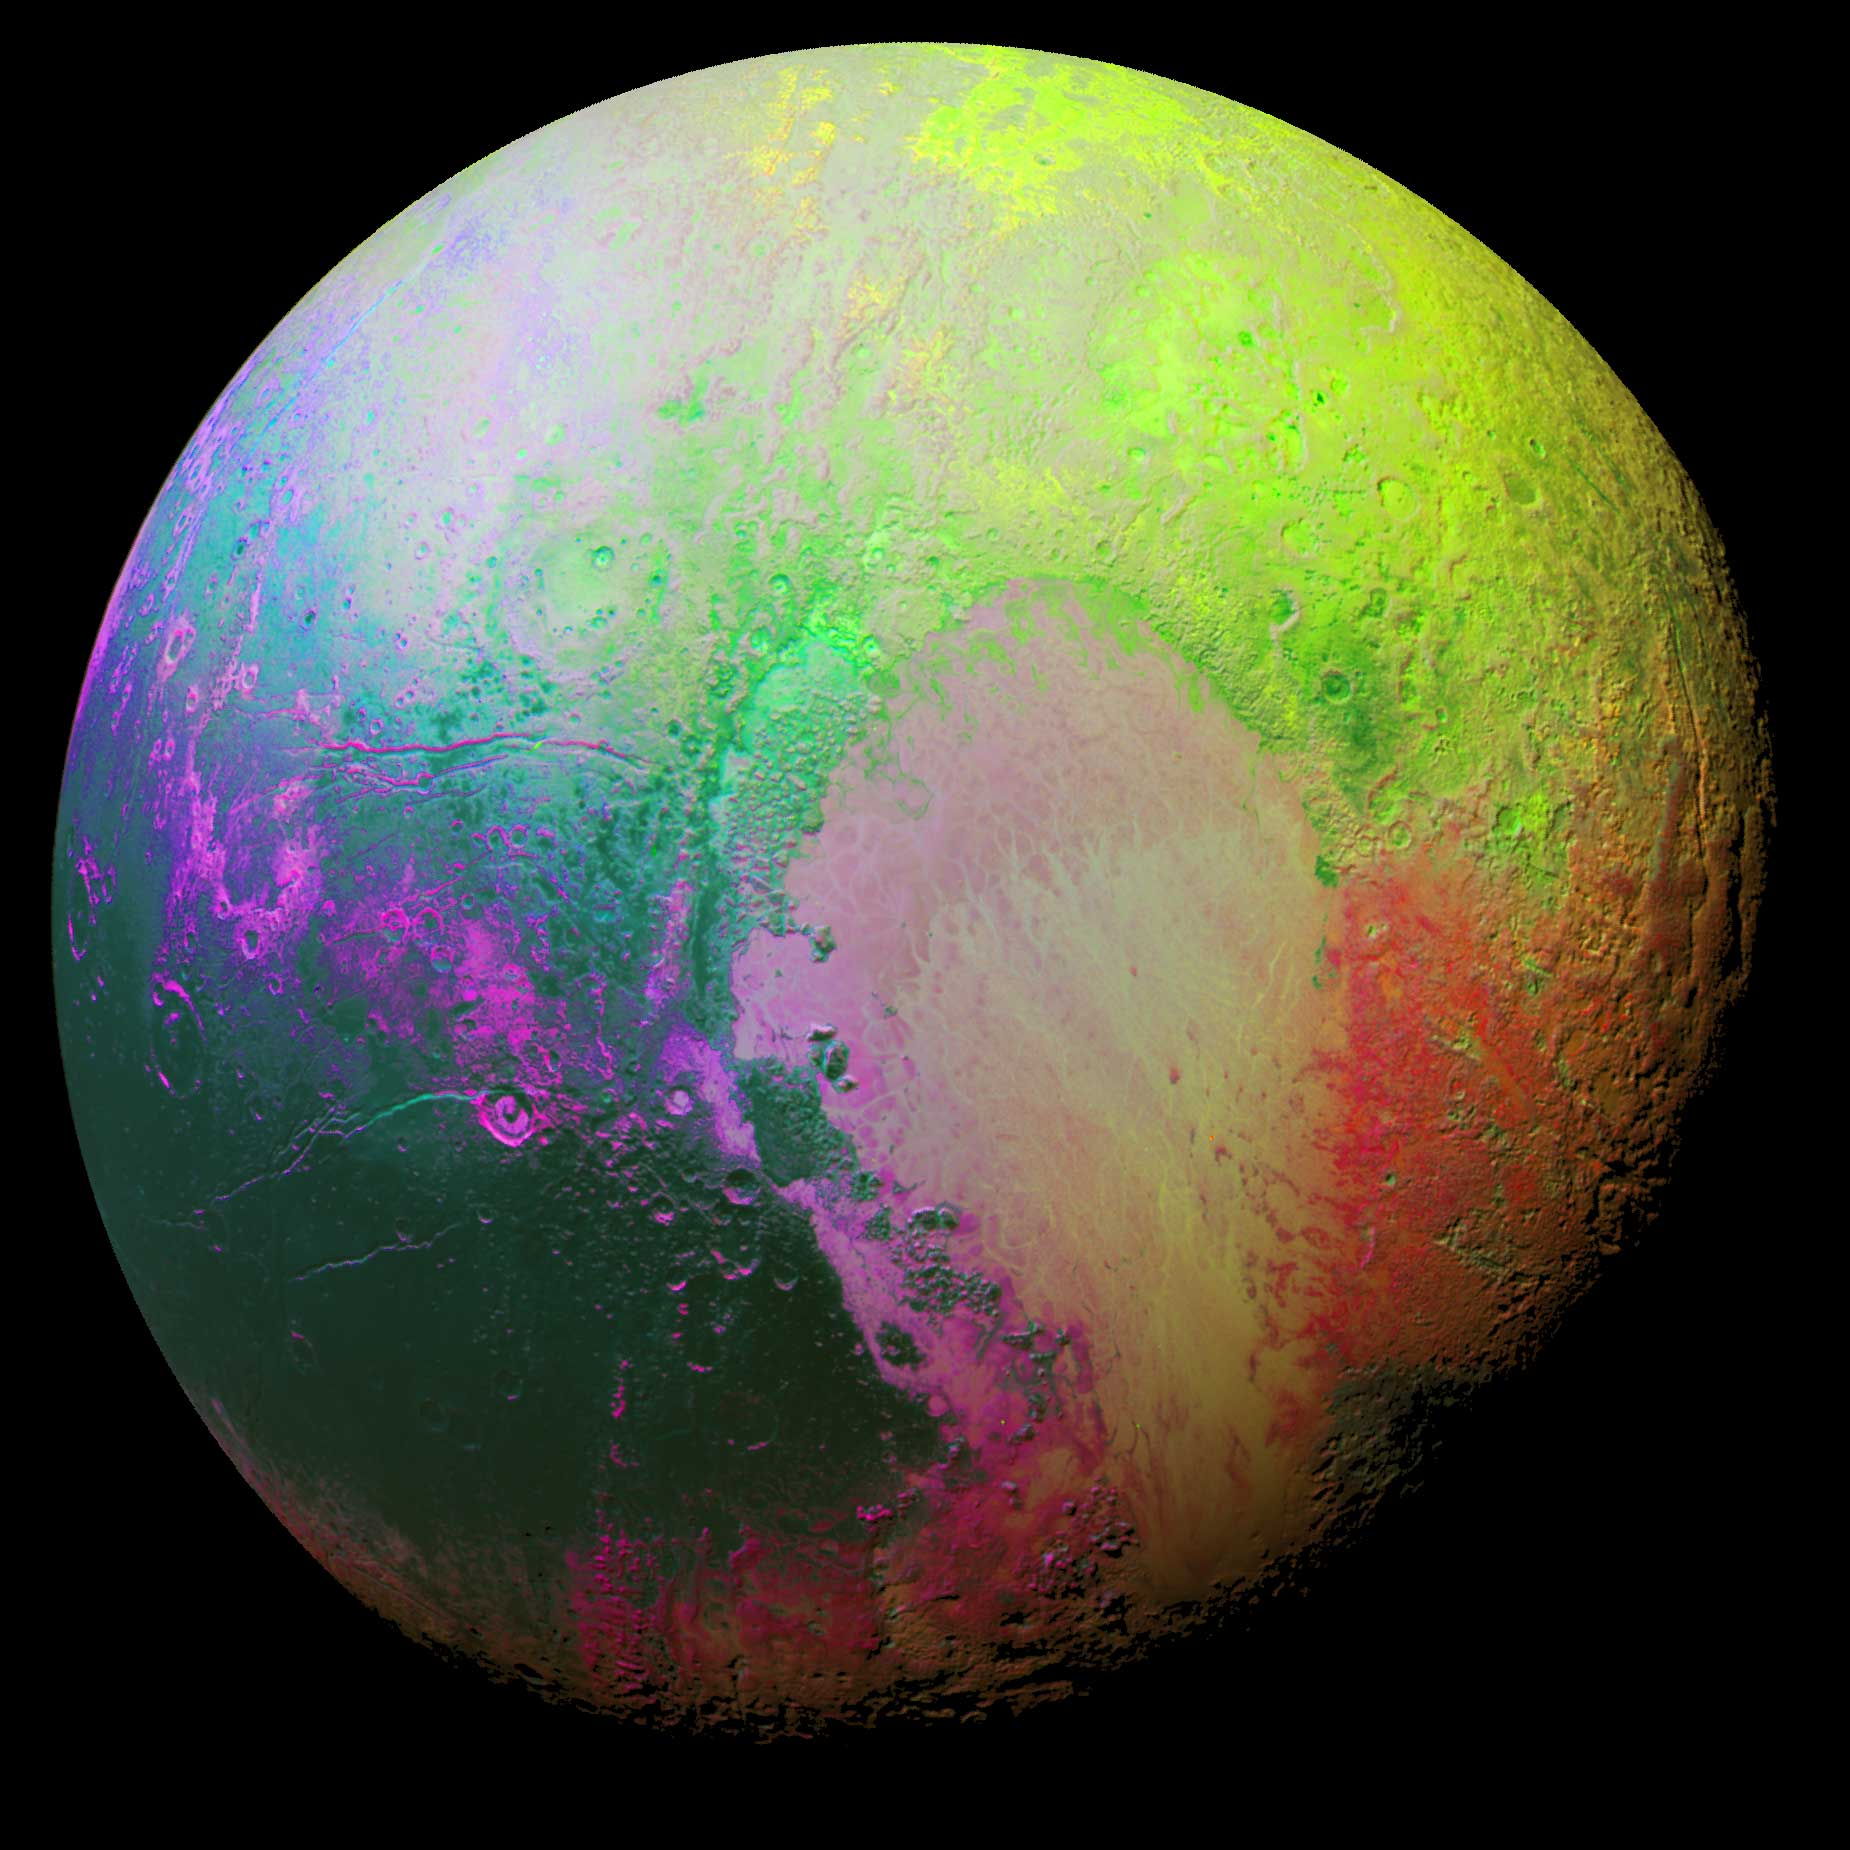 New Horizons scientists made this false color image of Pluto using a technique called principal component analysis to highlight the many subtle color differences among Pluto's different regions. The picture was taken from a distance of 22,000 miles on July 14, 2015.